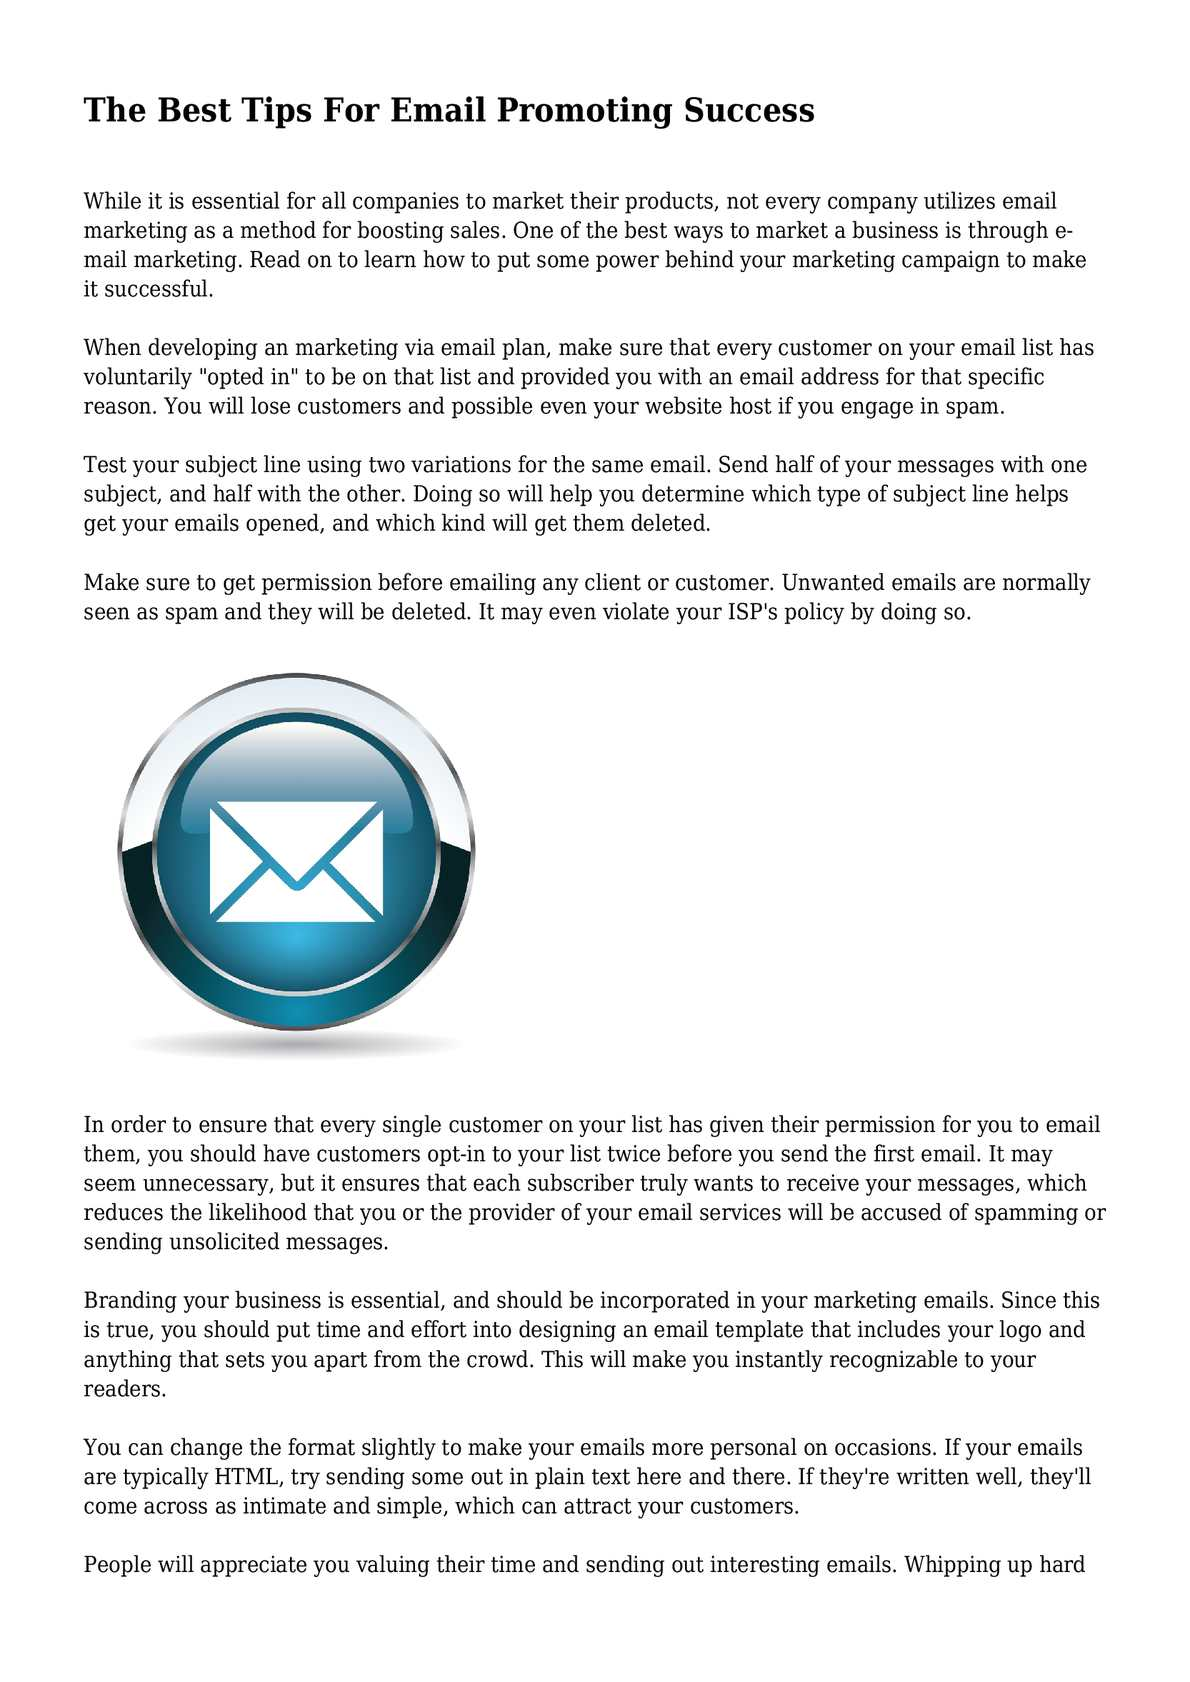 Calaméo - The Best Tips For Email Promoting Success